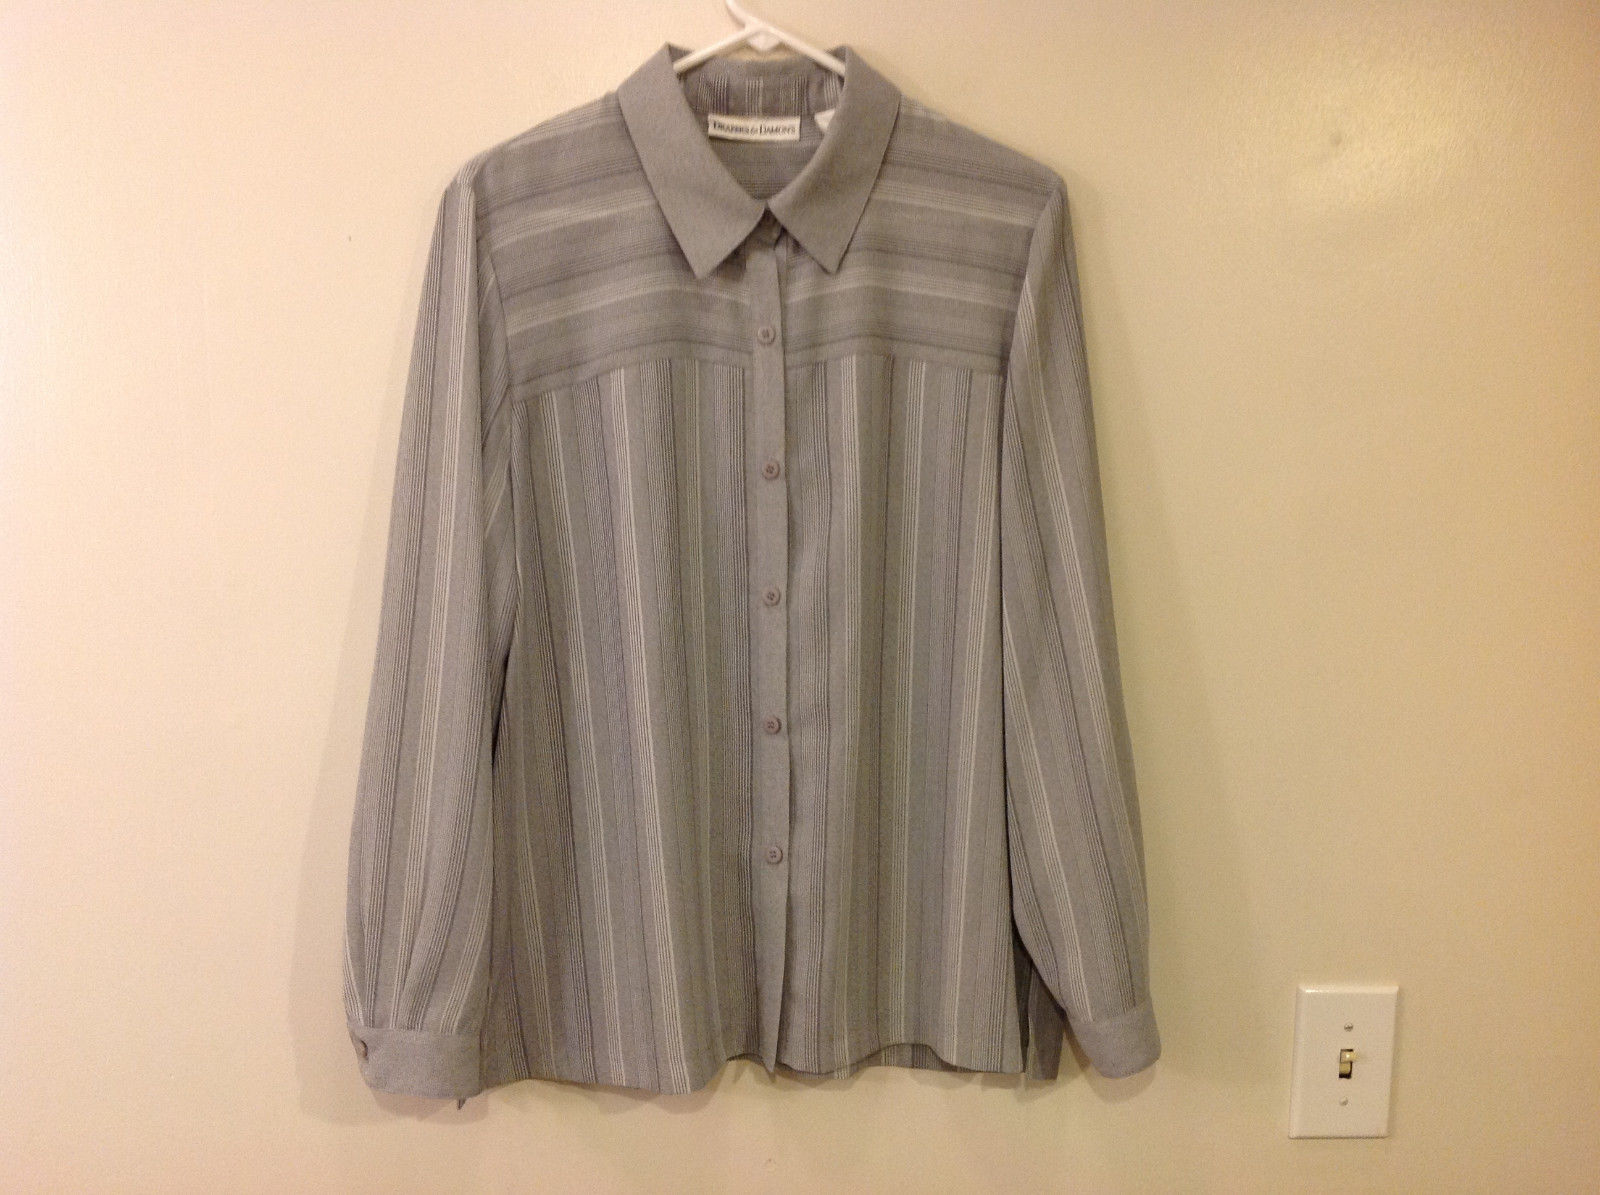 Draper & Damon Men's Size L Button-Down Shirt Gray + White Stripes Long Sleeves